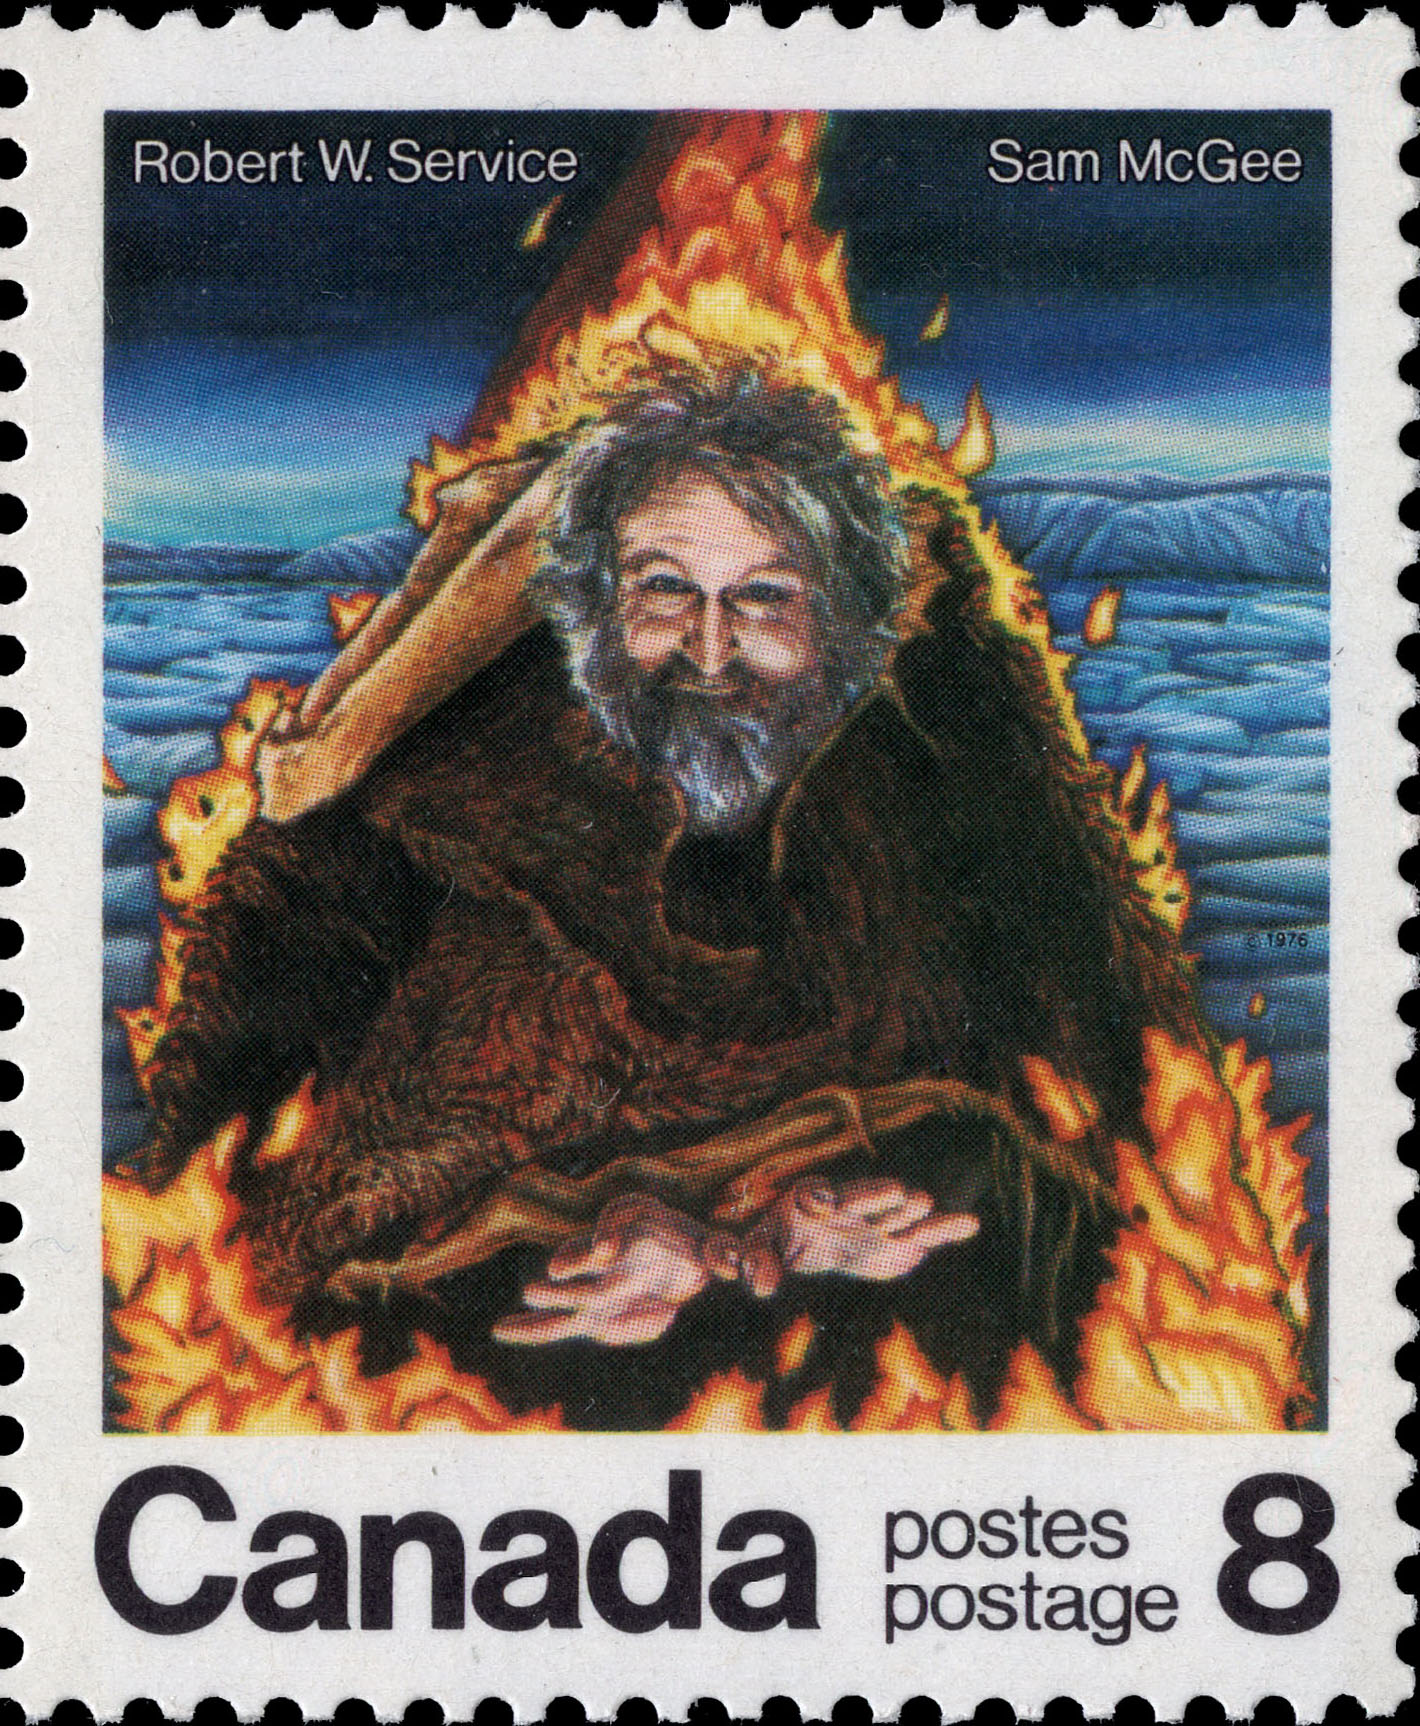 Robert W. Service, Sam McGee Canada Postage Stamp